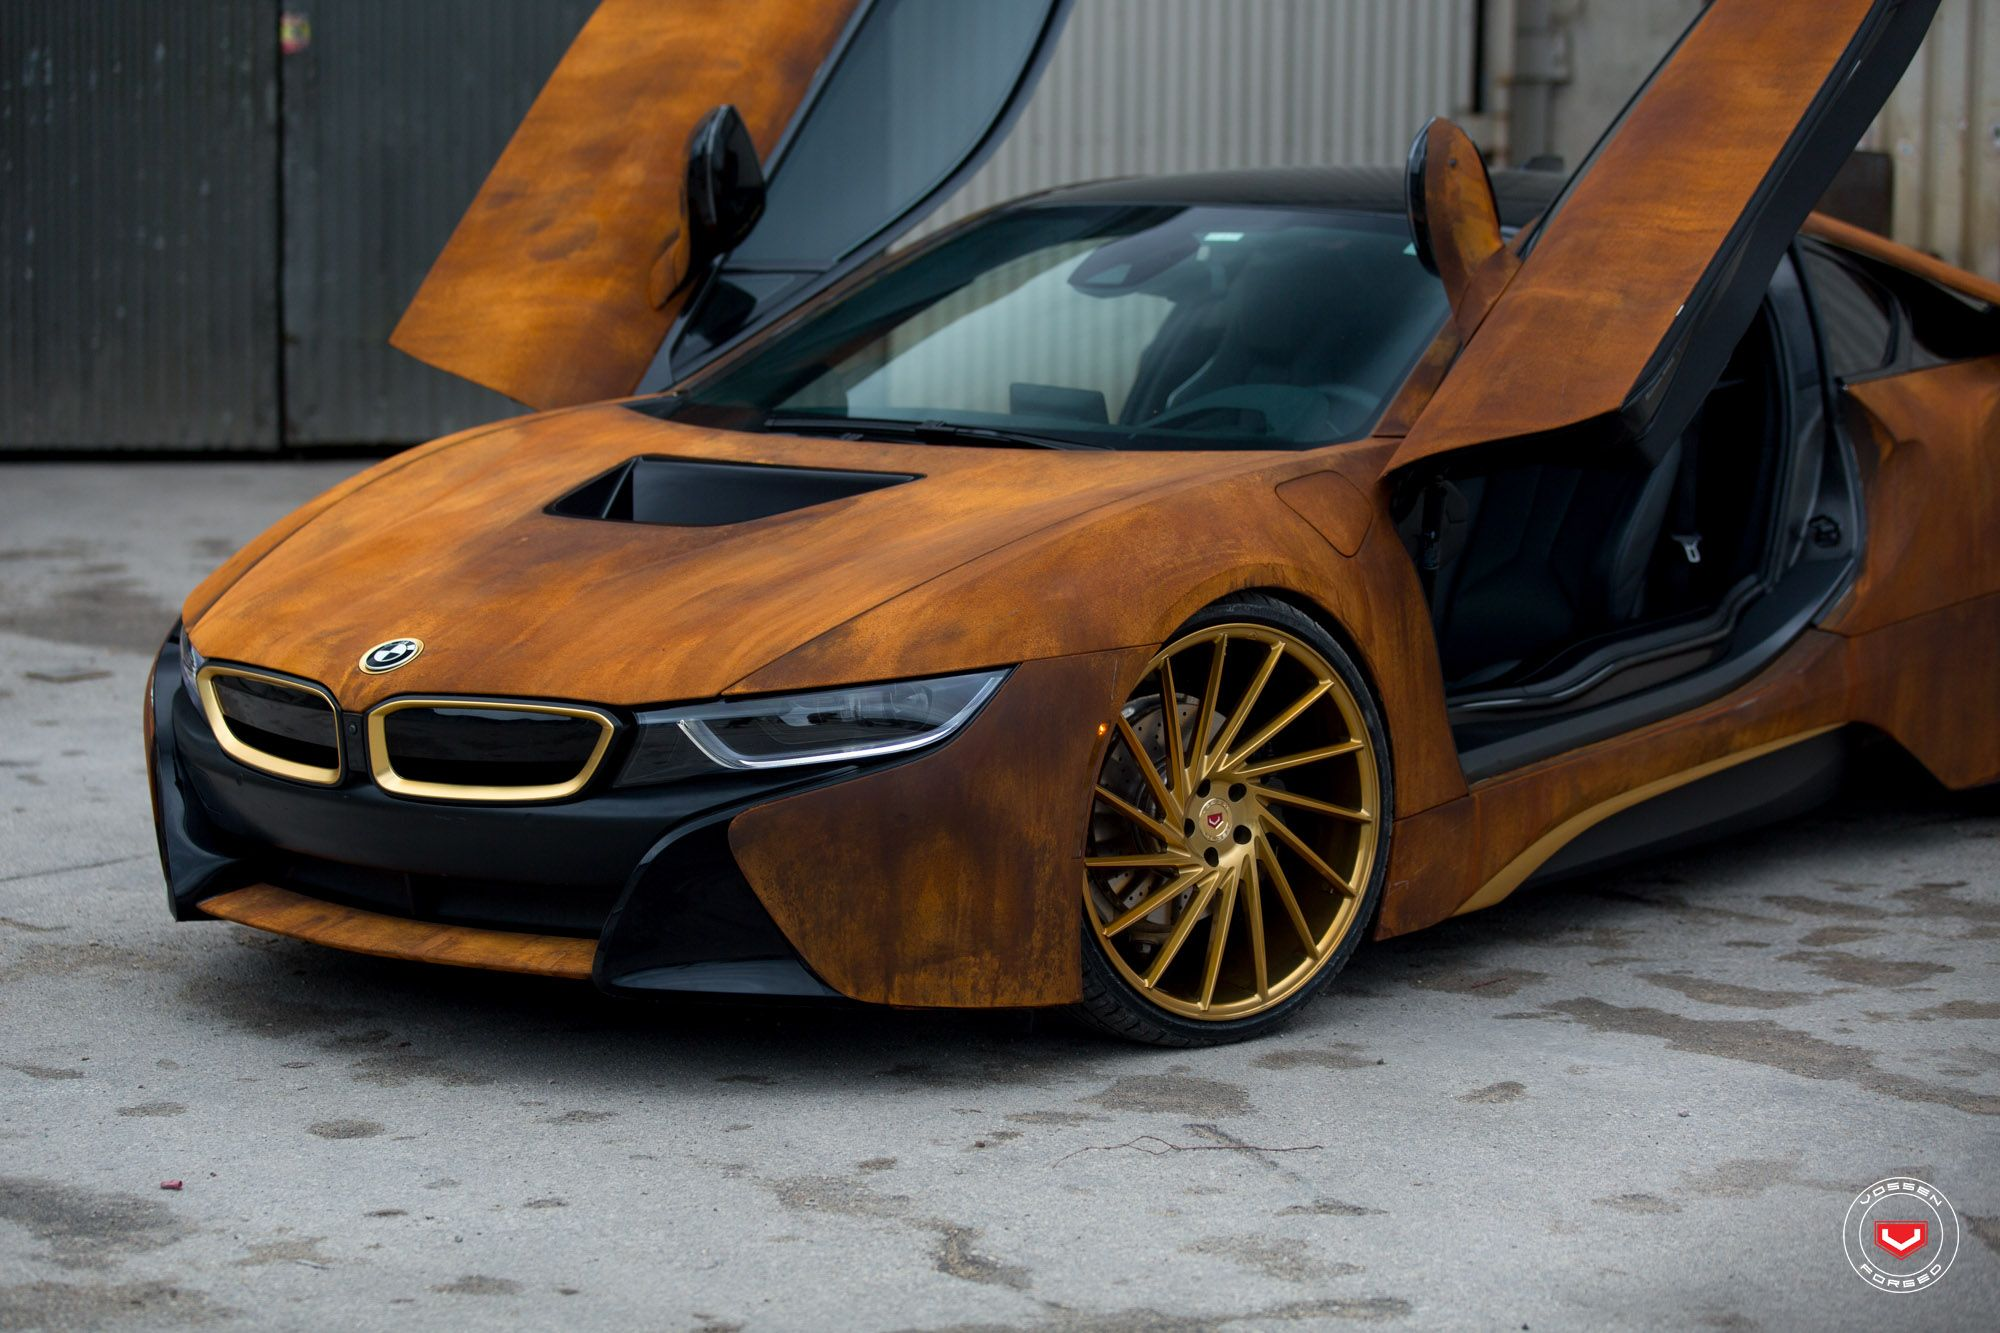 BMW i8 Coupe eDrive CoffeeBrown VOSSENWheels Green City